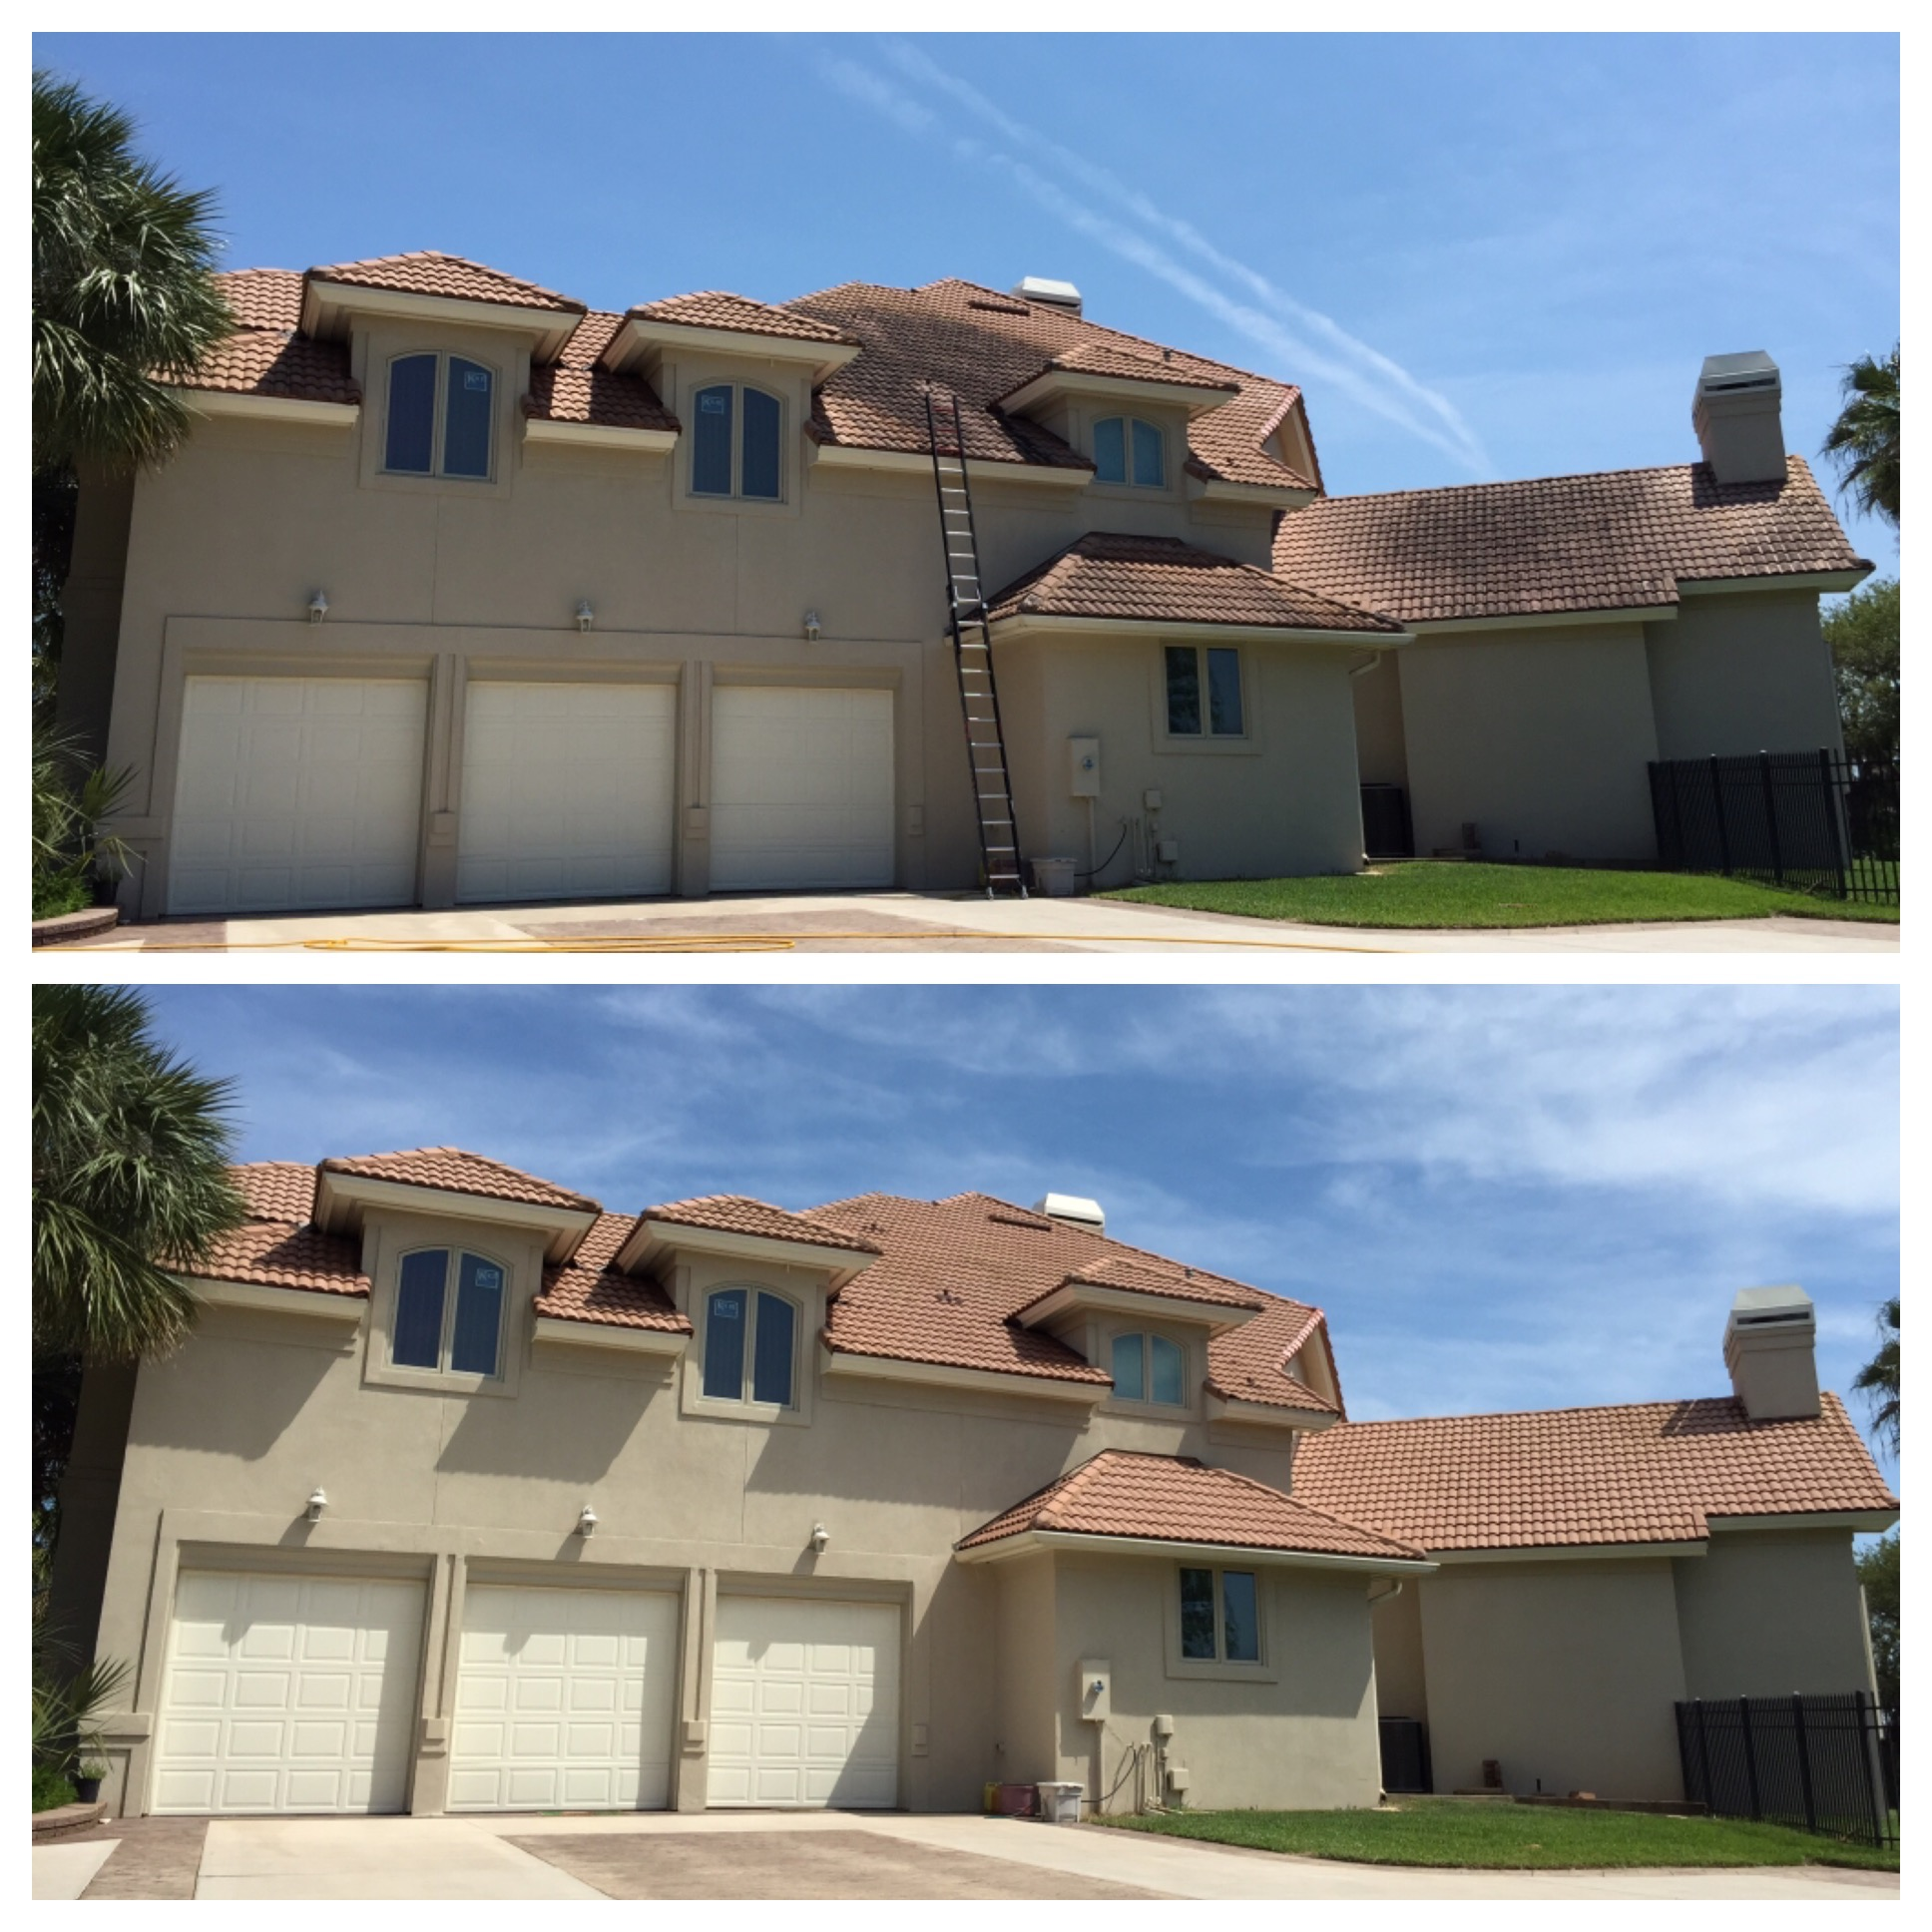 Terra Cotta Tile Roof Cleaning Before and After